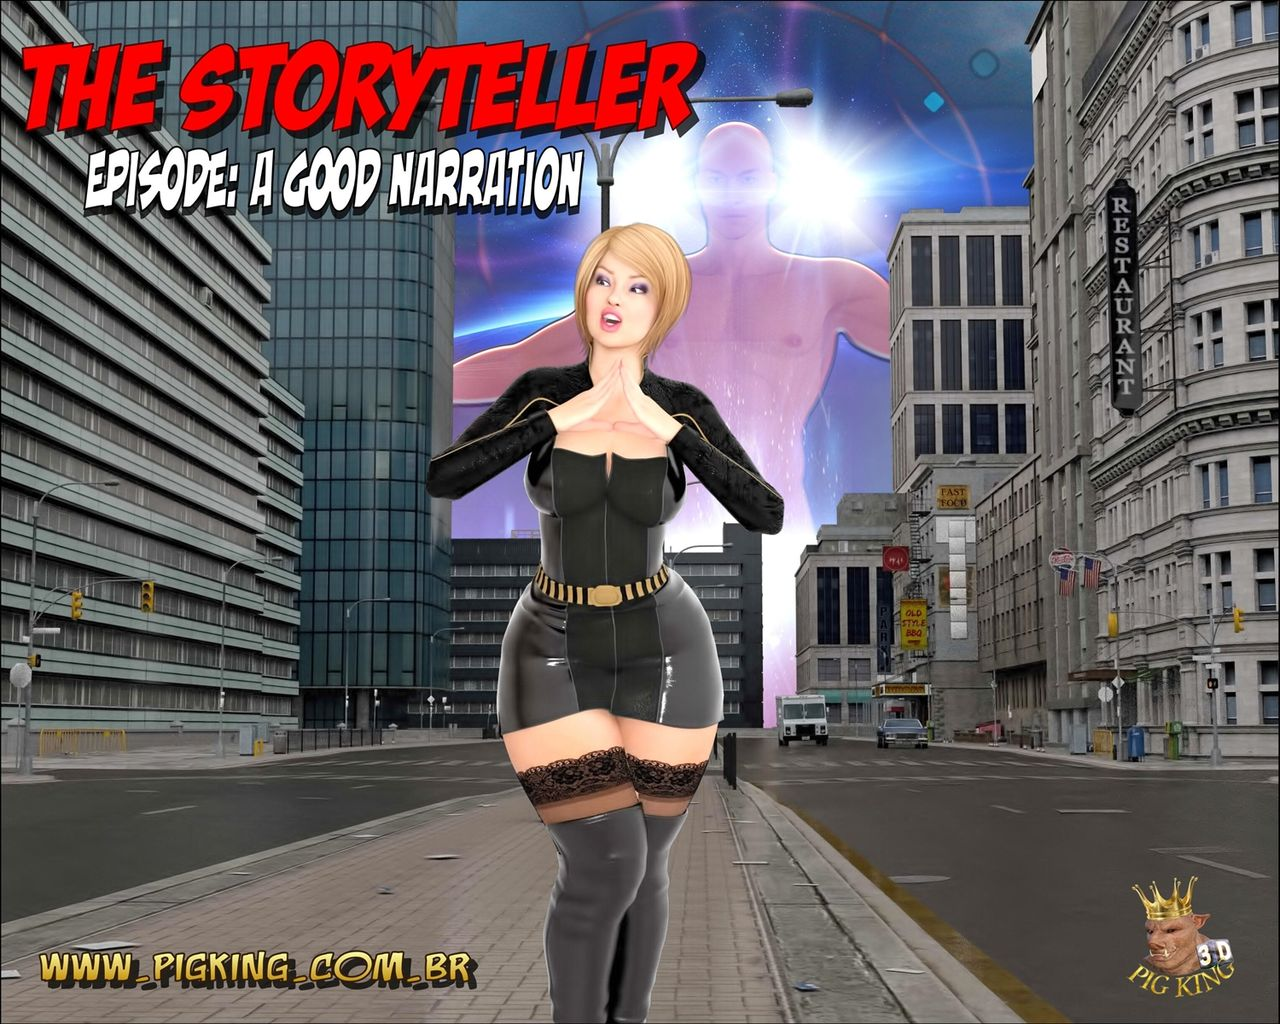 Storyteller- A good Narration,Pig King porn comics 8 muses